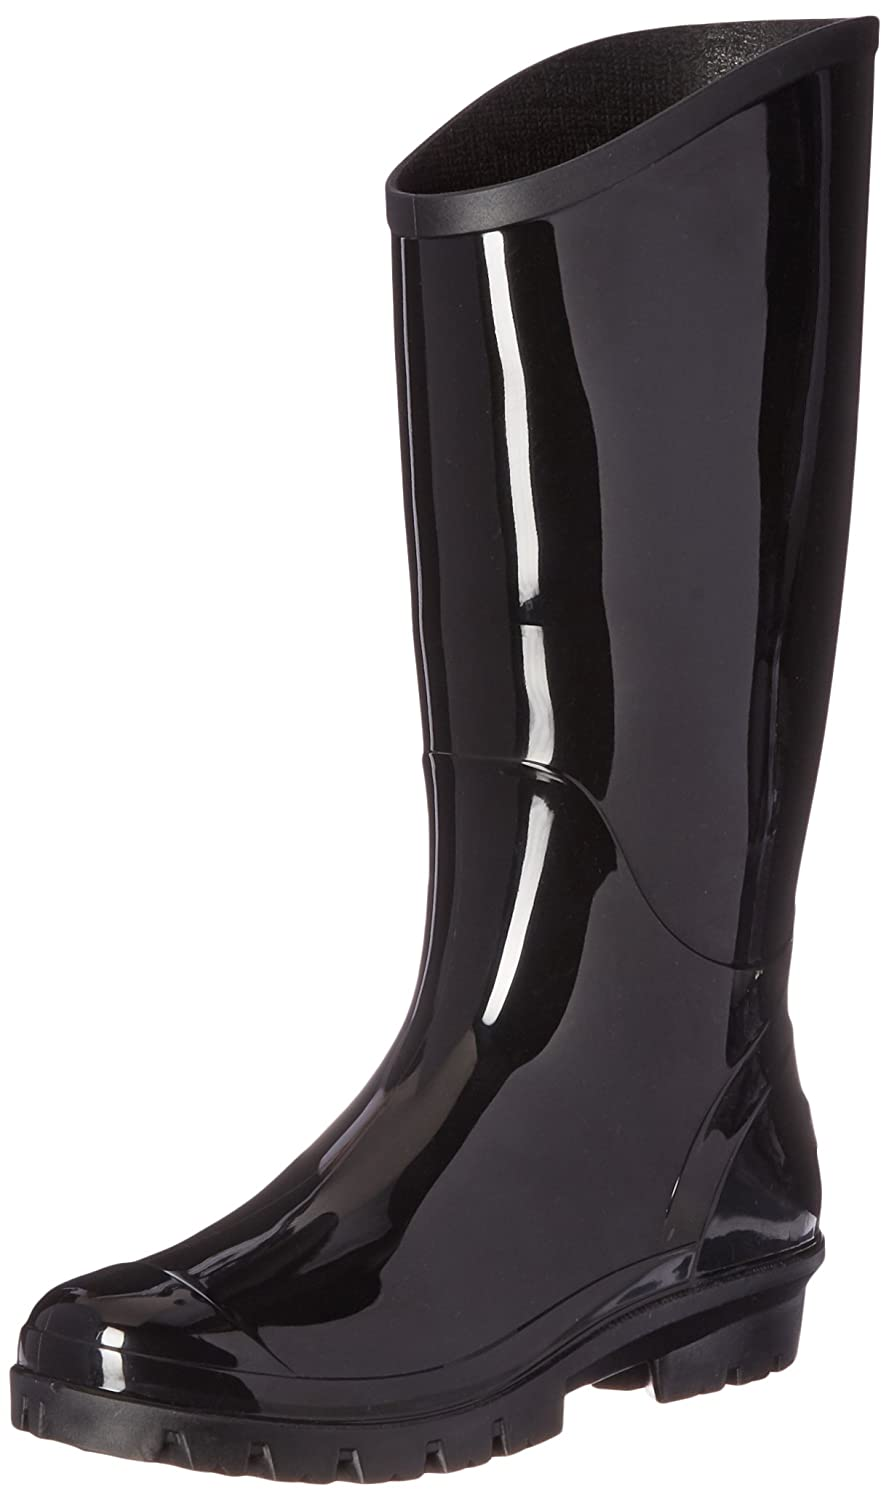 Columbia Women's Rainey Tall Rain Boot B01BOOC4PY 7.5 B(M) US|Black/City Grey